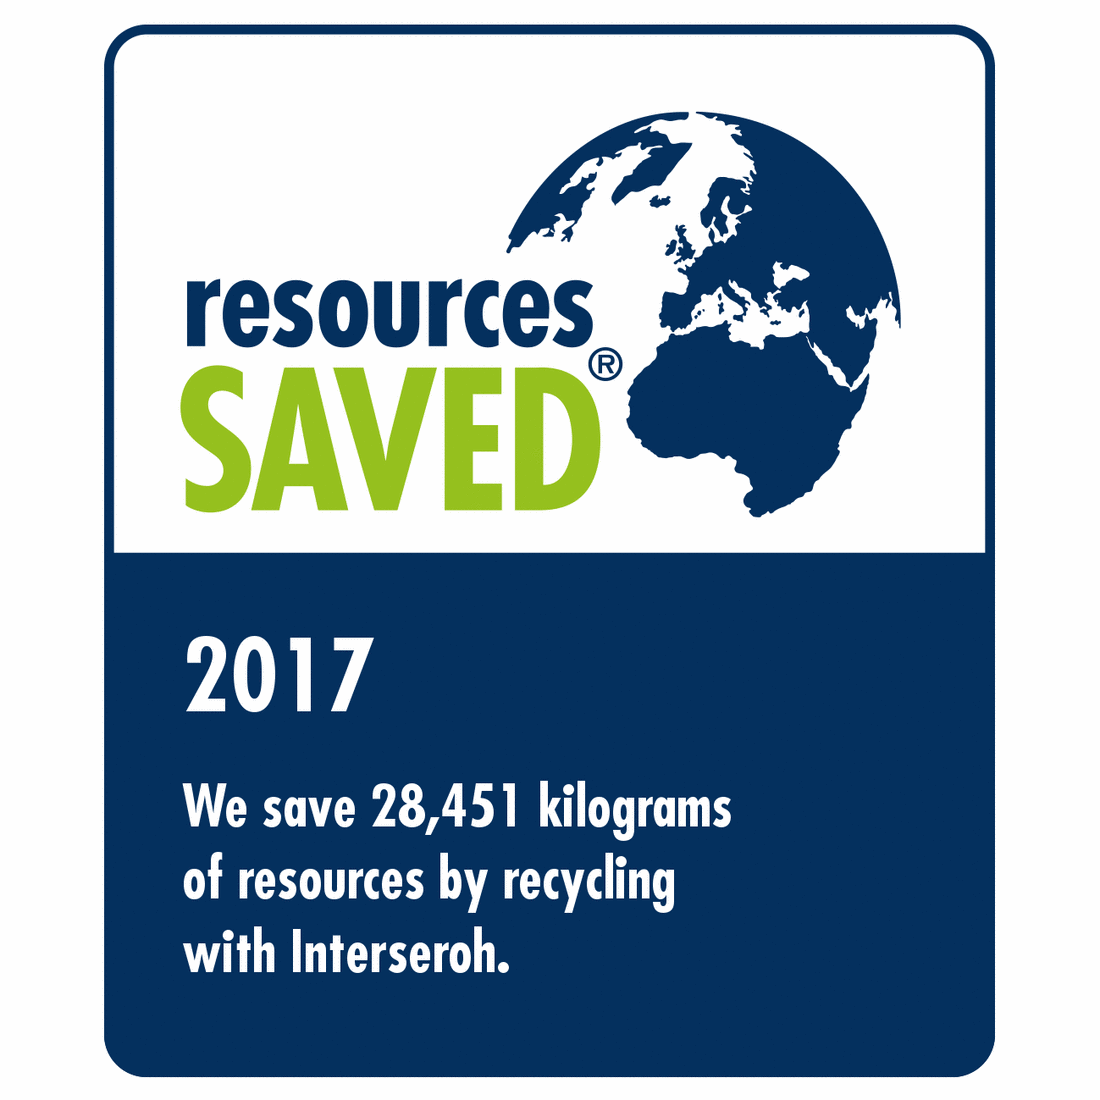 2017 - Saved resources by recycling